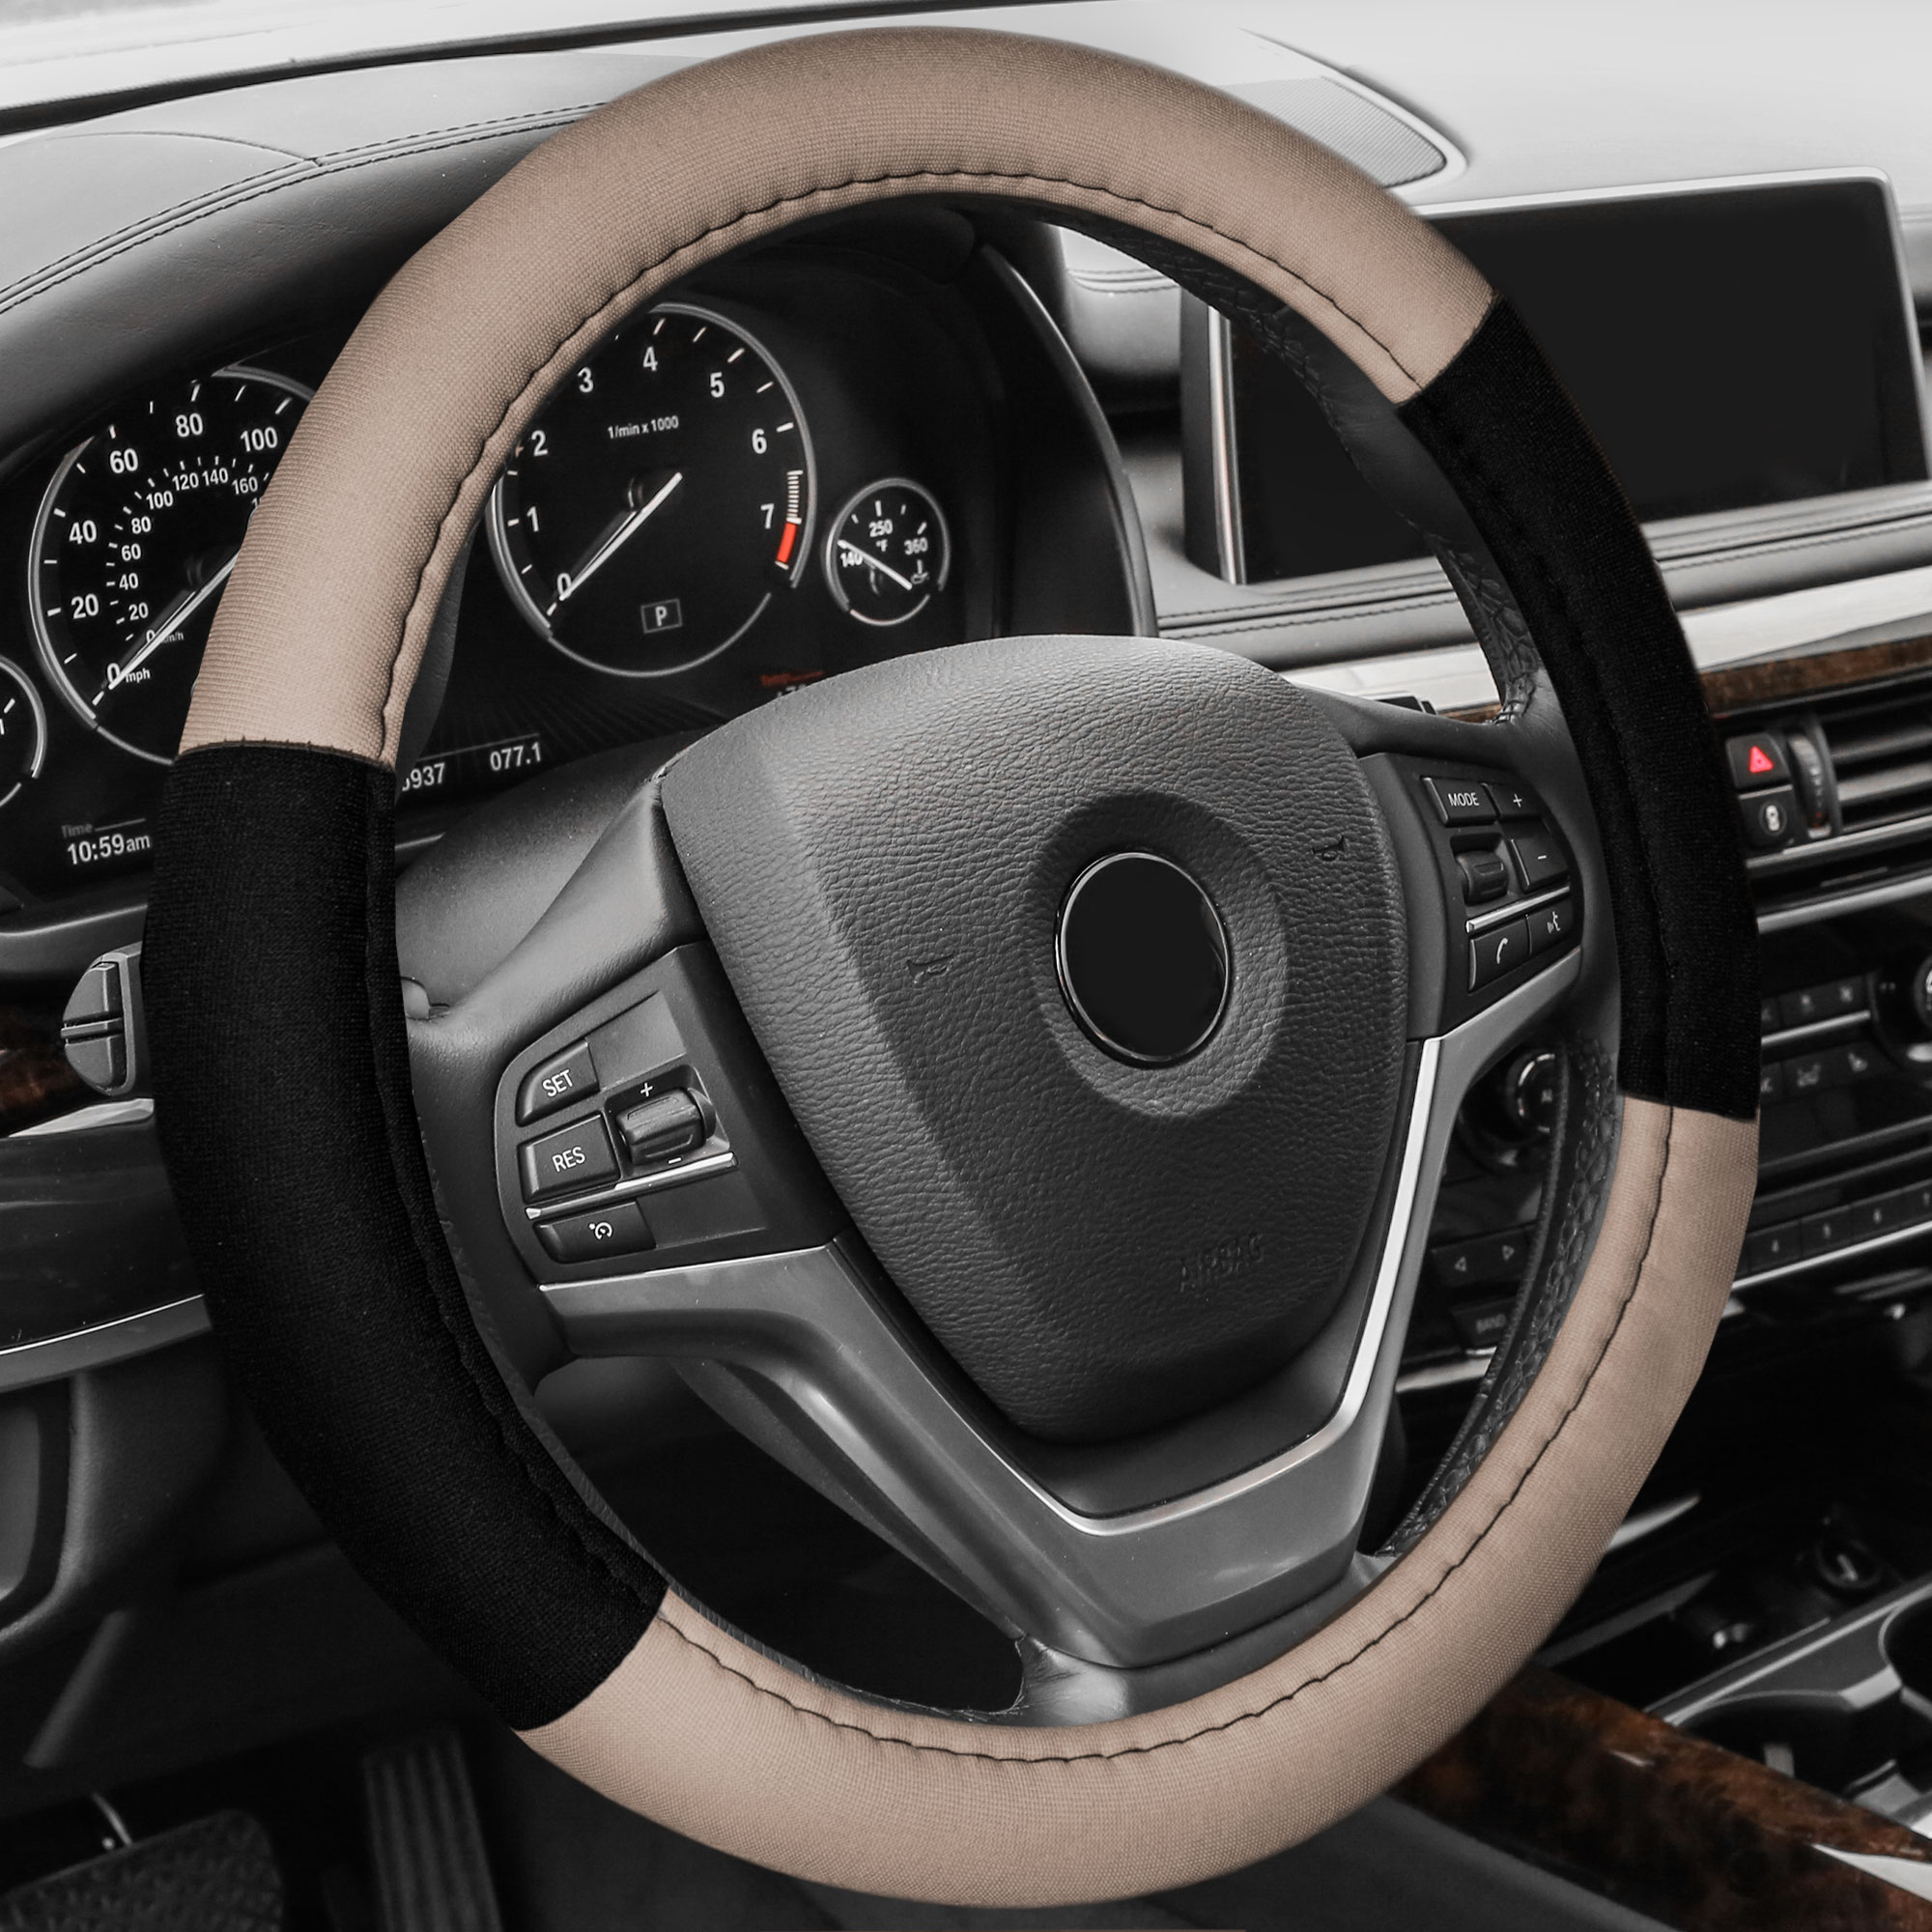 FH Group Cloth Steering Wheel Cover for Sedan, SUV, Van, Cloth Steering Wheel Cover, Beige Black